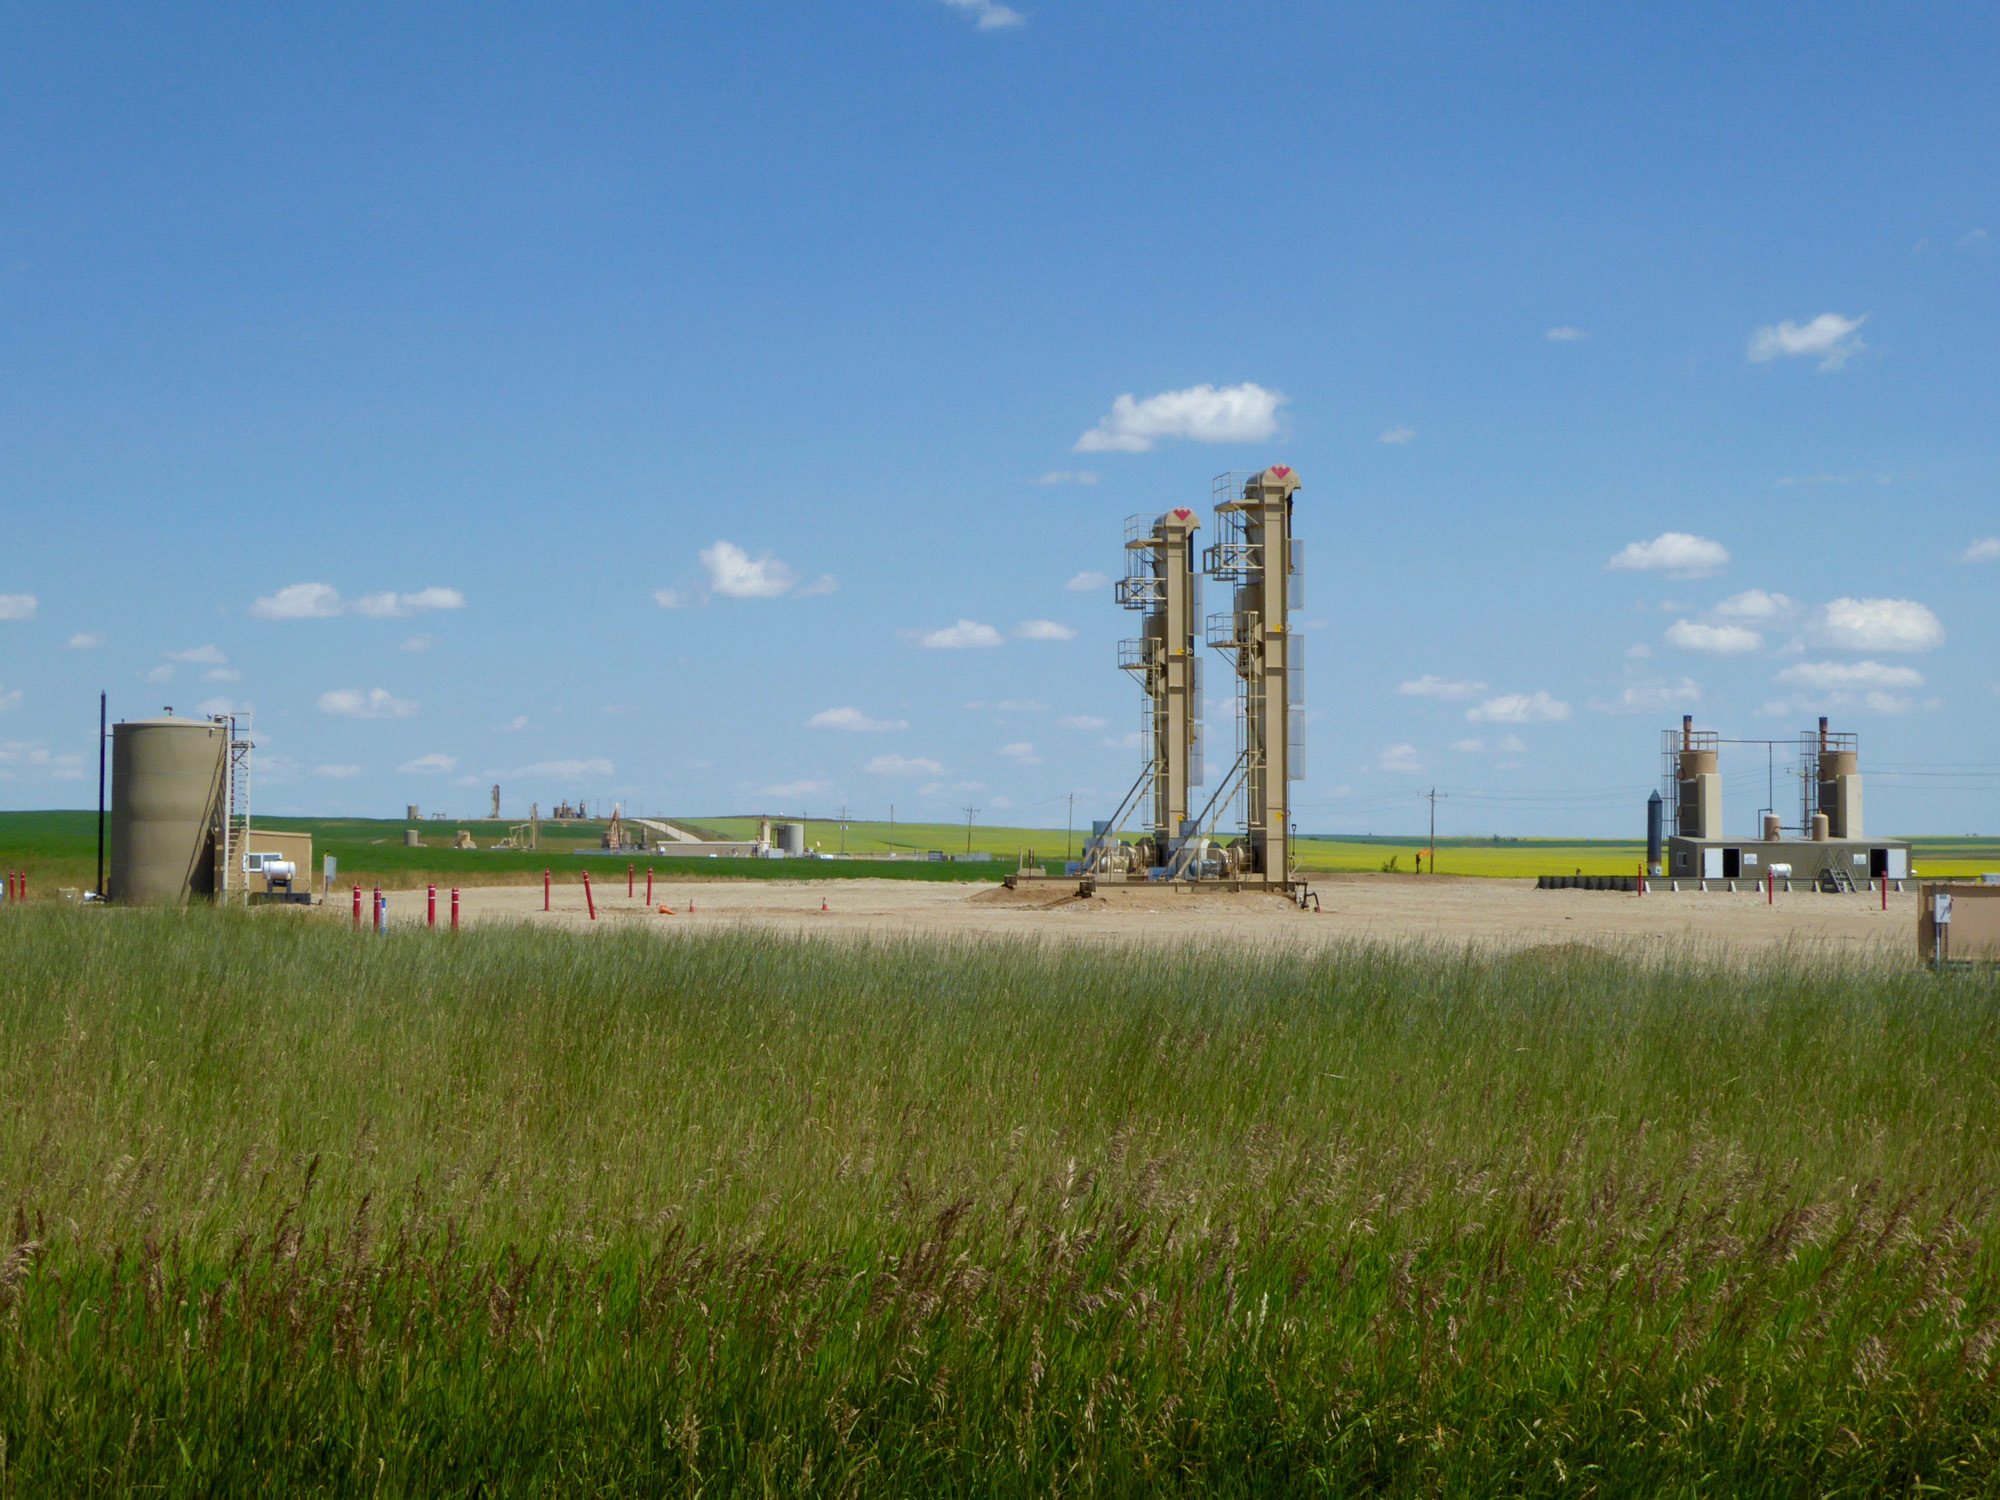 Oil development east of Williston, ND